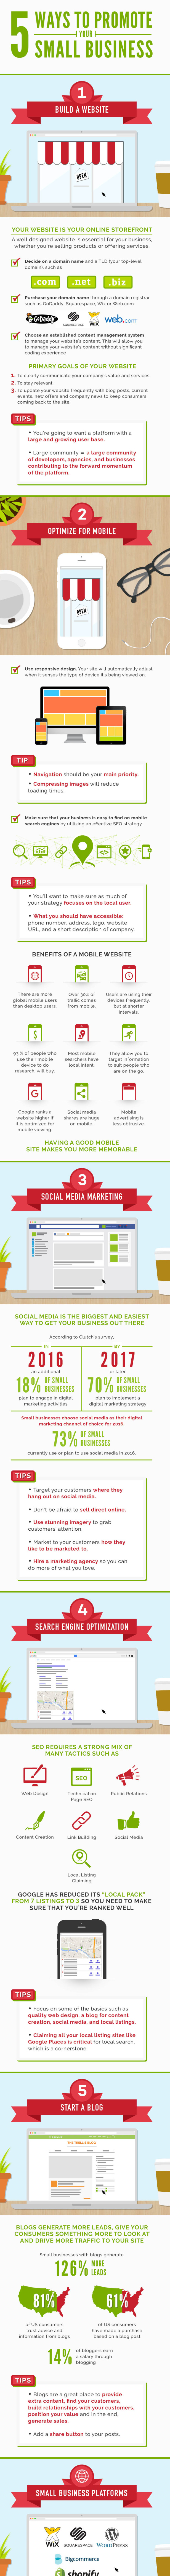 the-5-most-important-ways-to-promote-your-small-business-online1